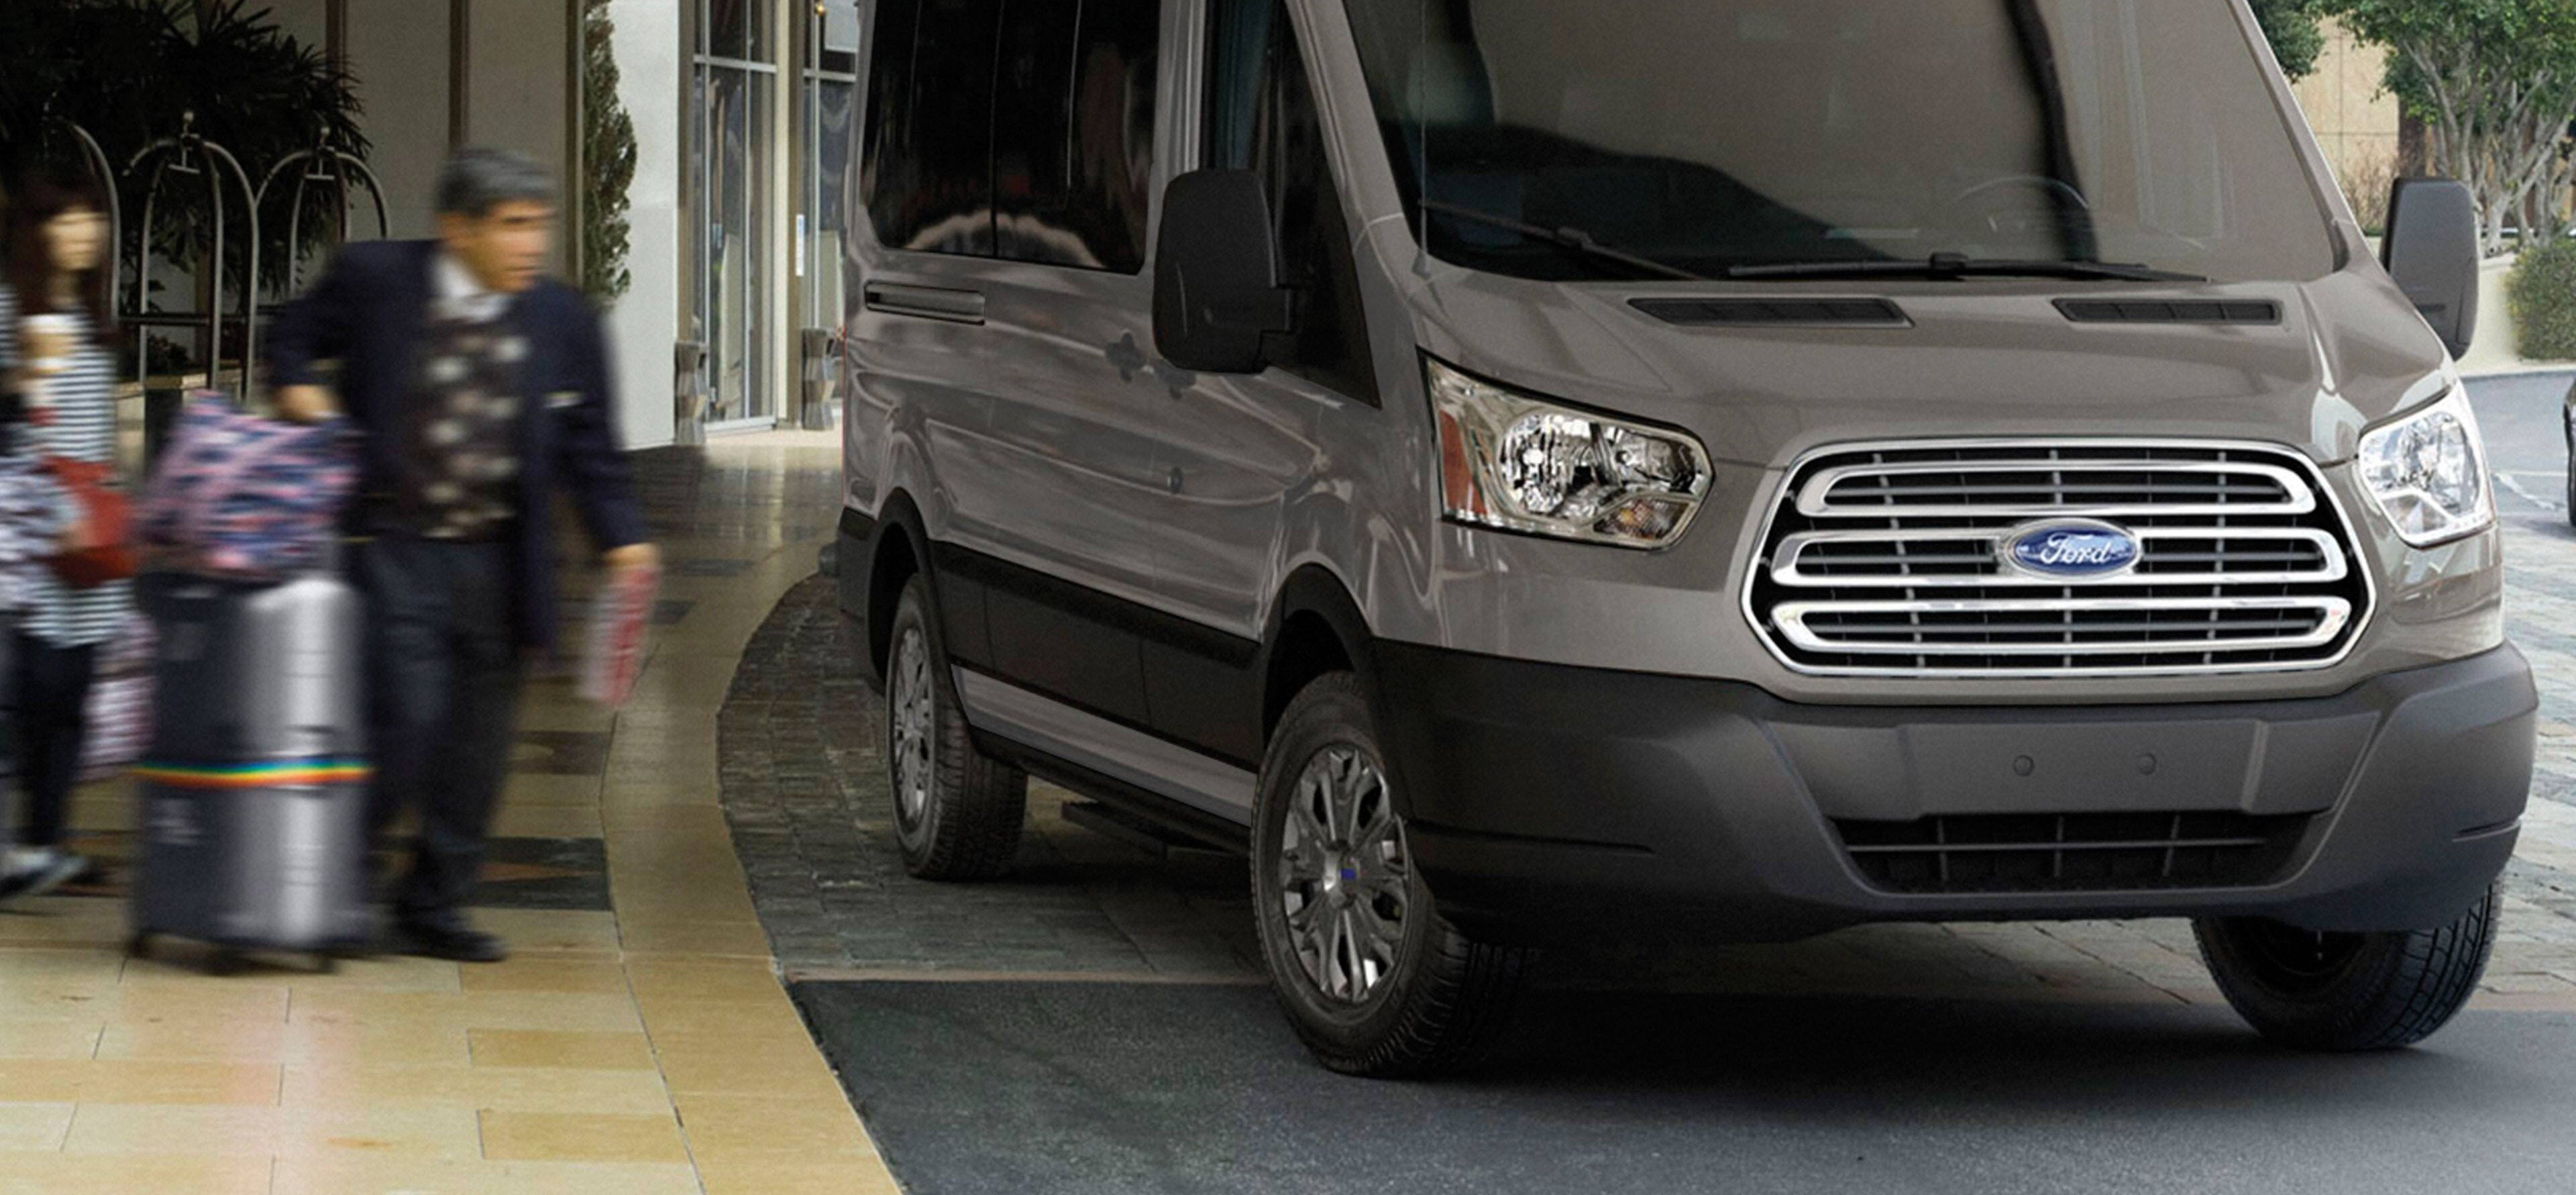 ford transit wagon buy prices lease offers des moines ia ford transit wagon buy prices lease